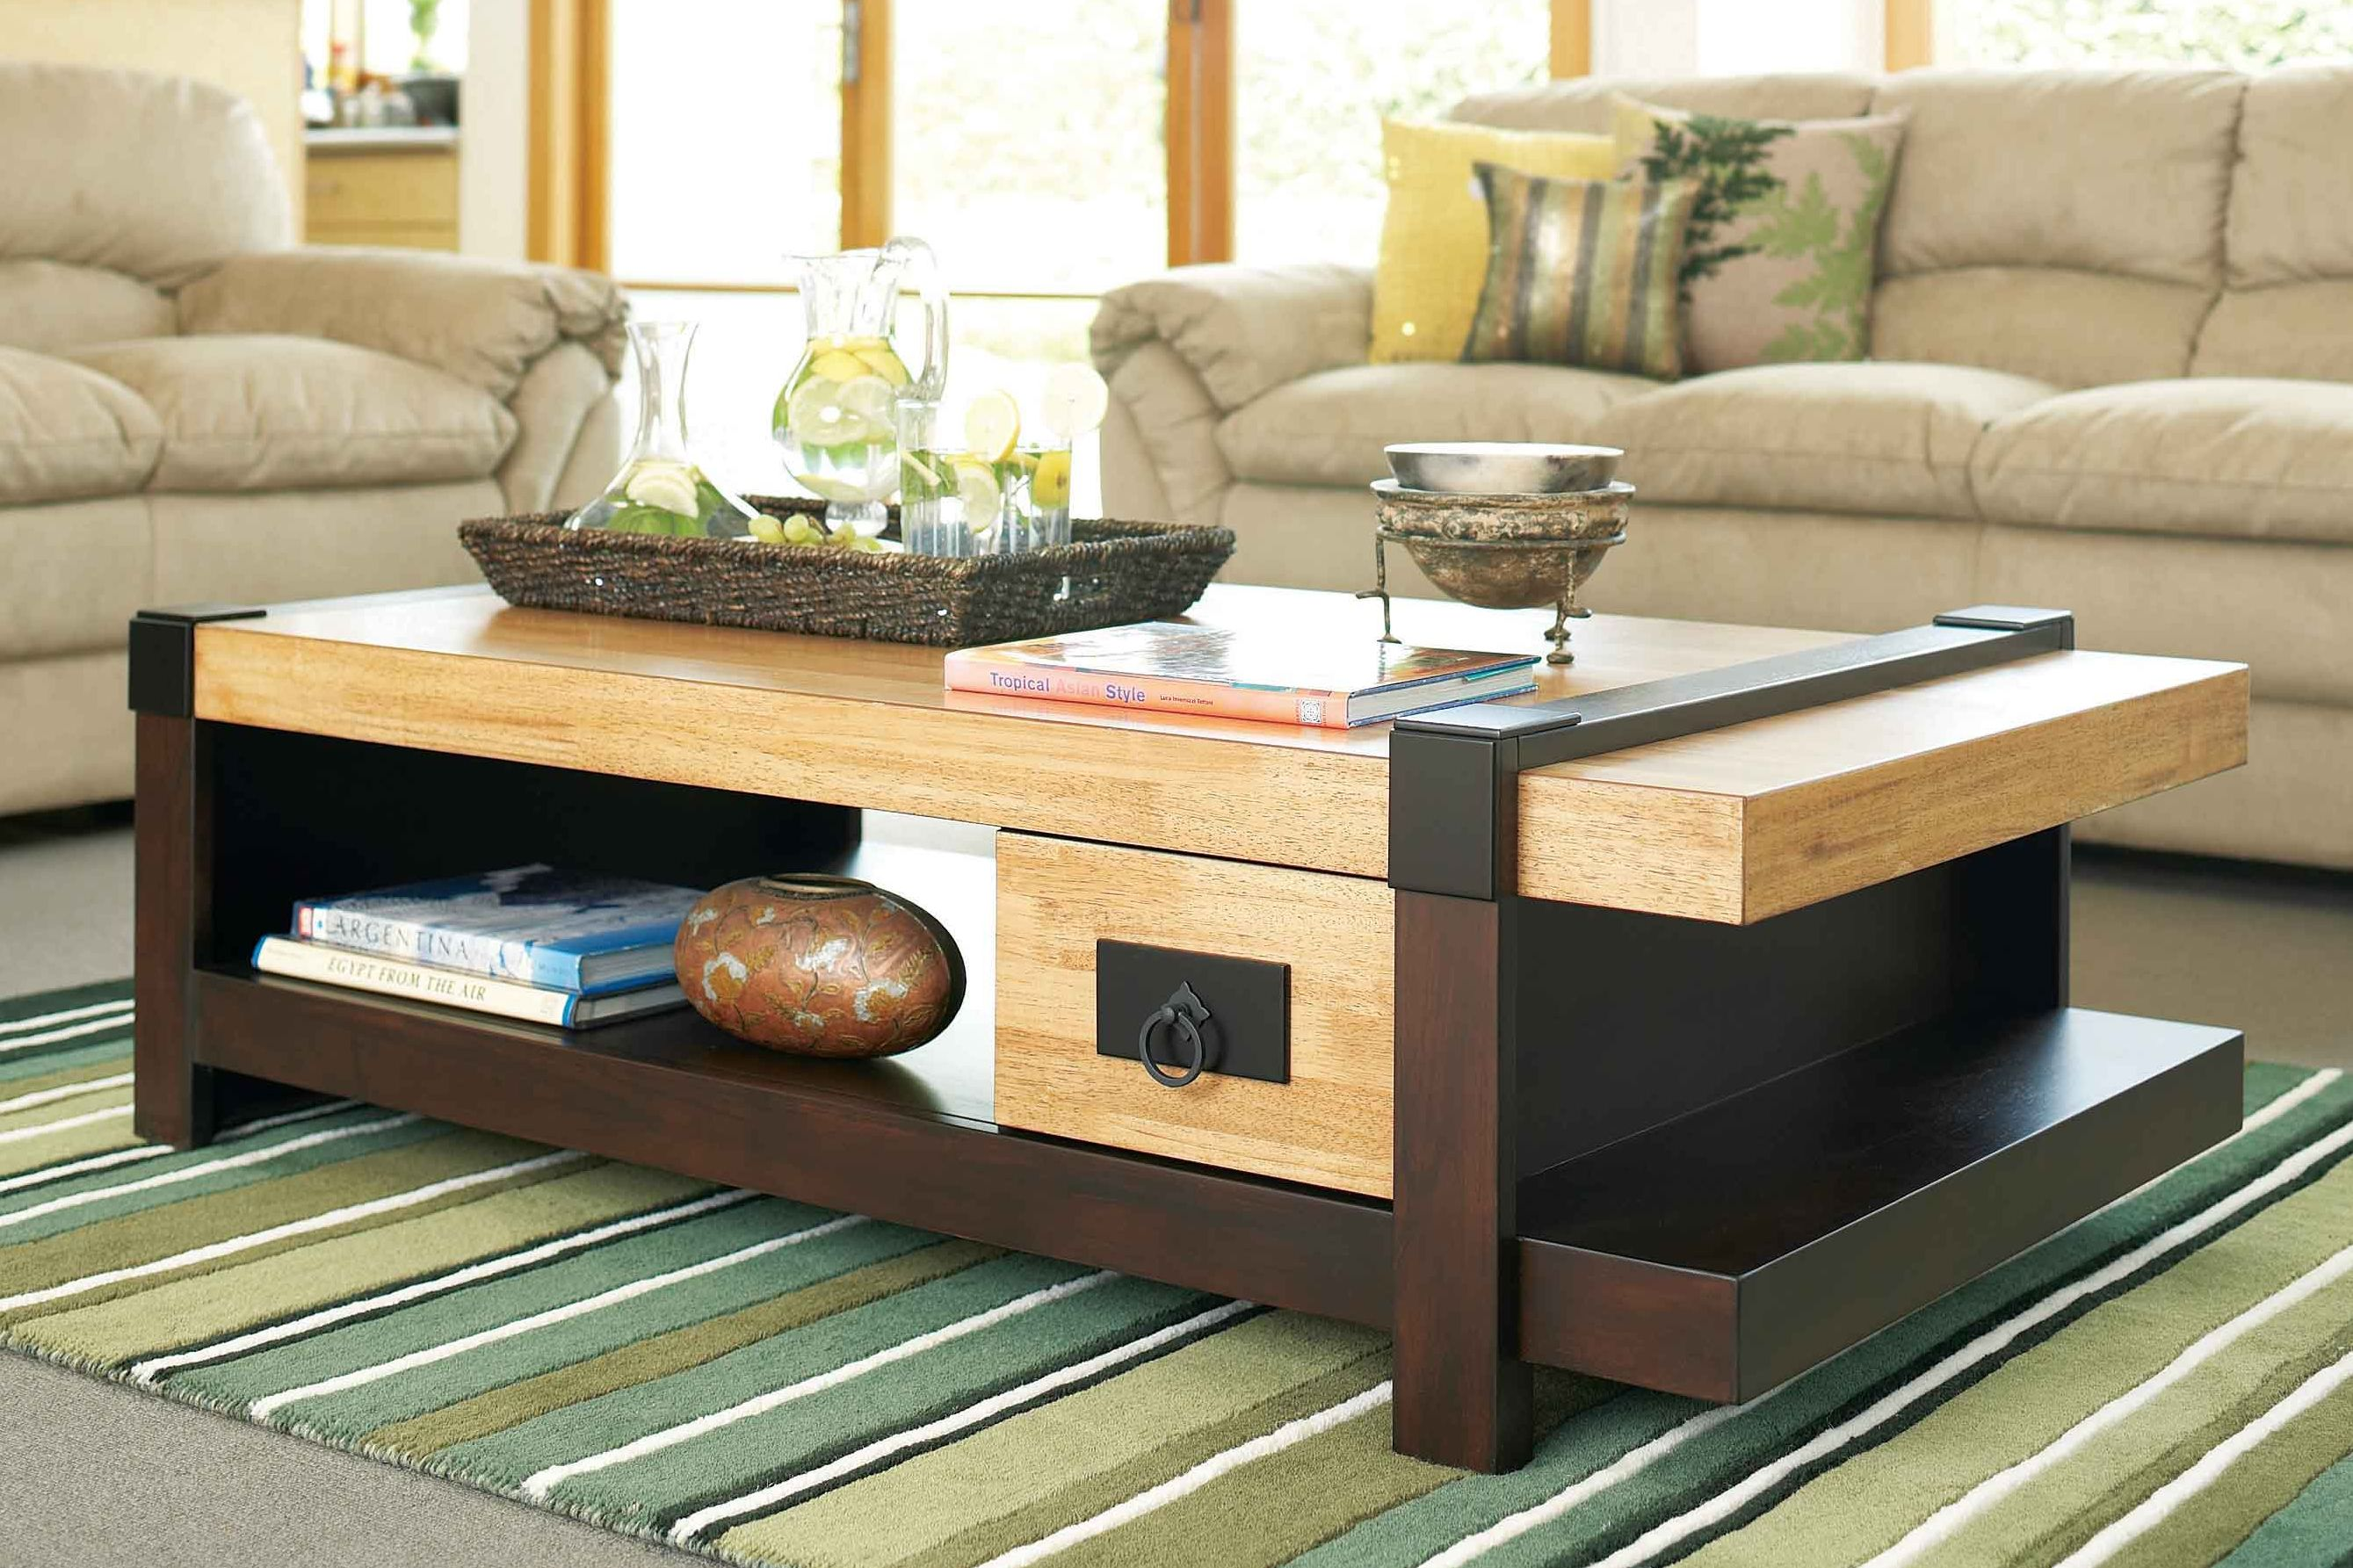 The York Coffee Table by Insato from Harvey Norman New Zealand